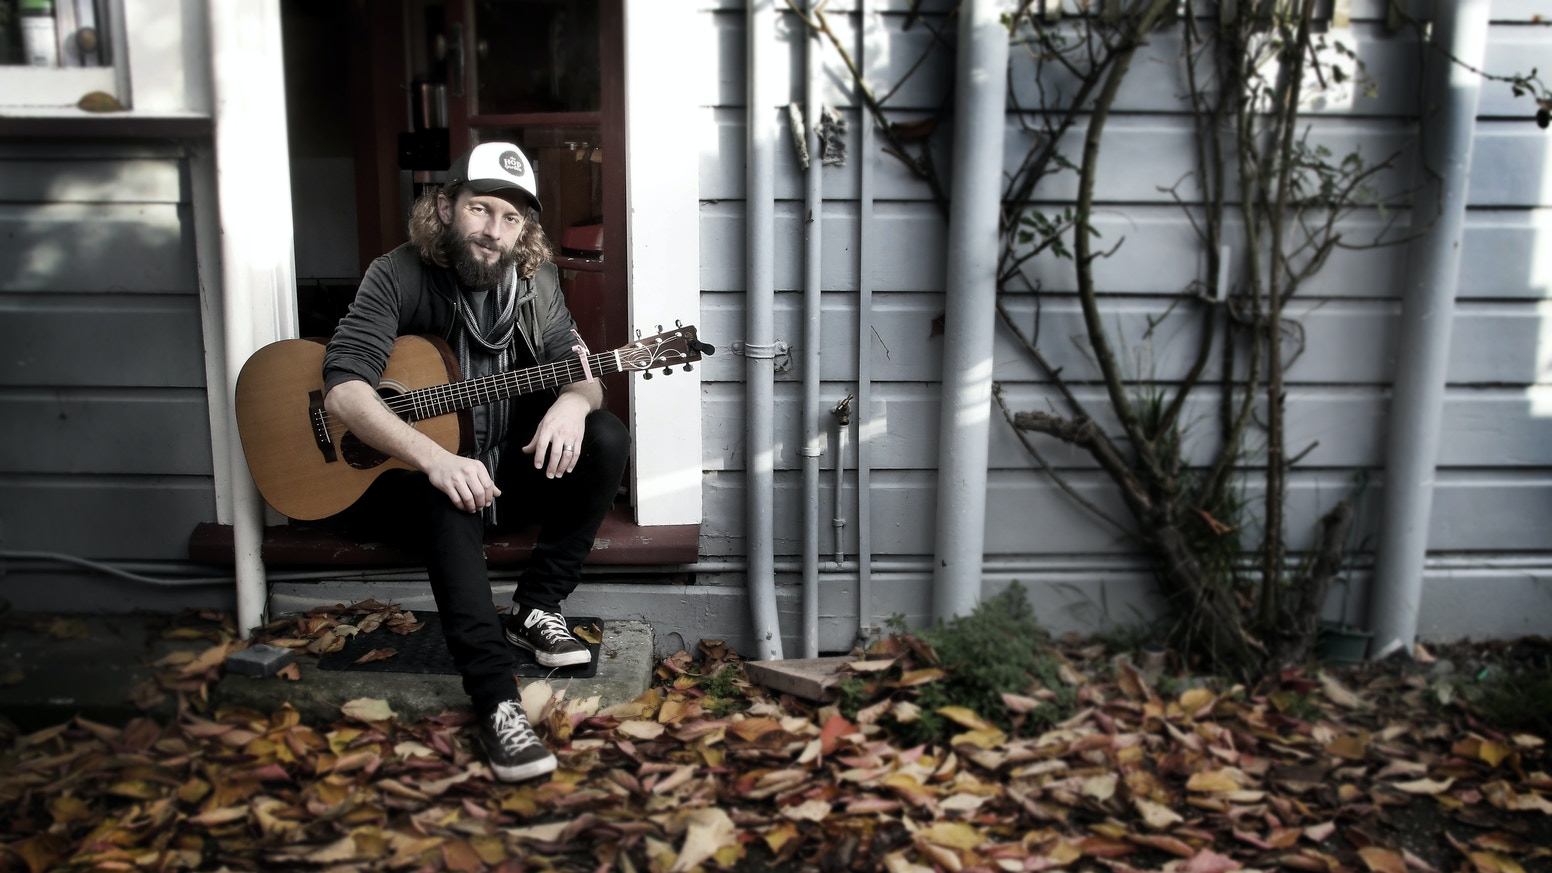 New Zealand Songwriter, Bill Hickman's album - 'Crossbones